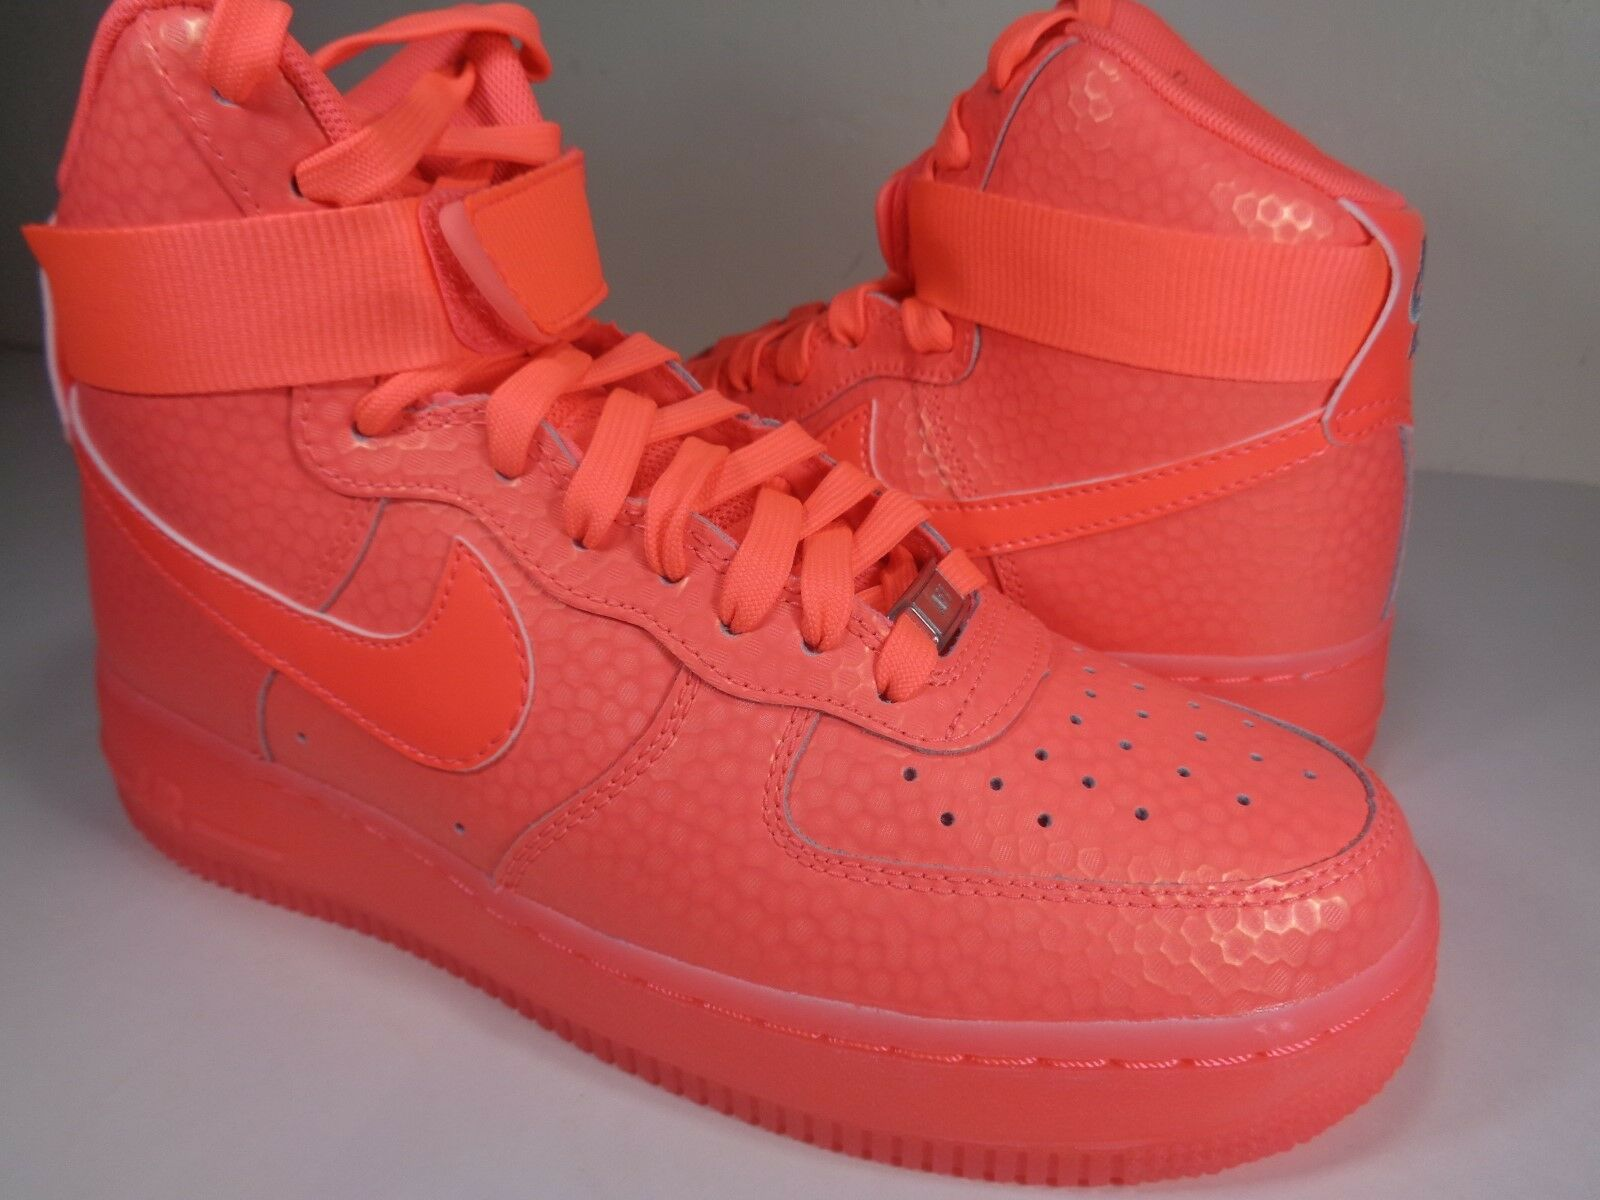 Womens Nike Air Force 1 Hi Premium Hot Lava Pink SZ 7.5 (654440-800)